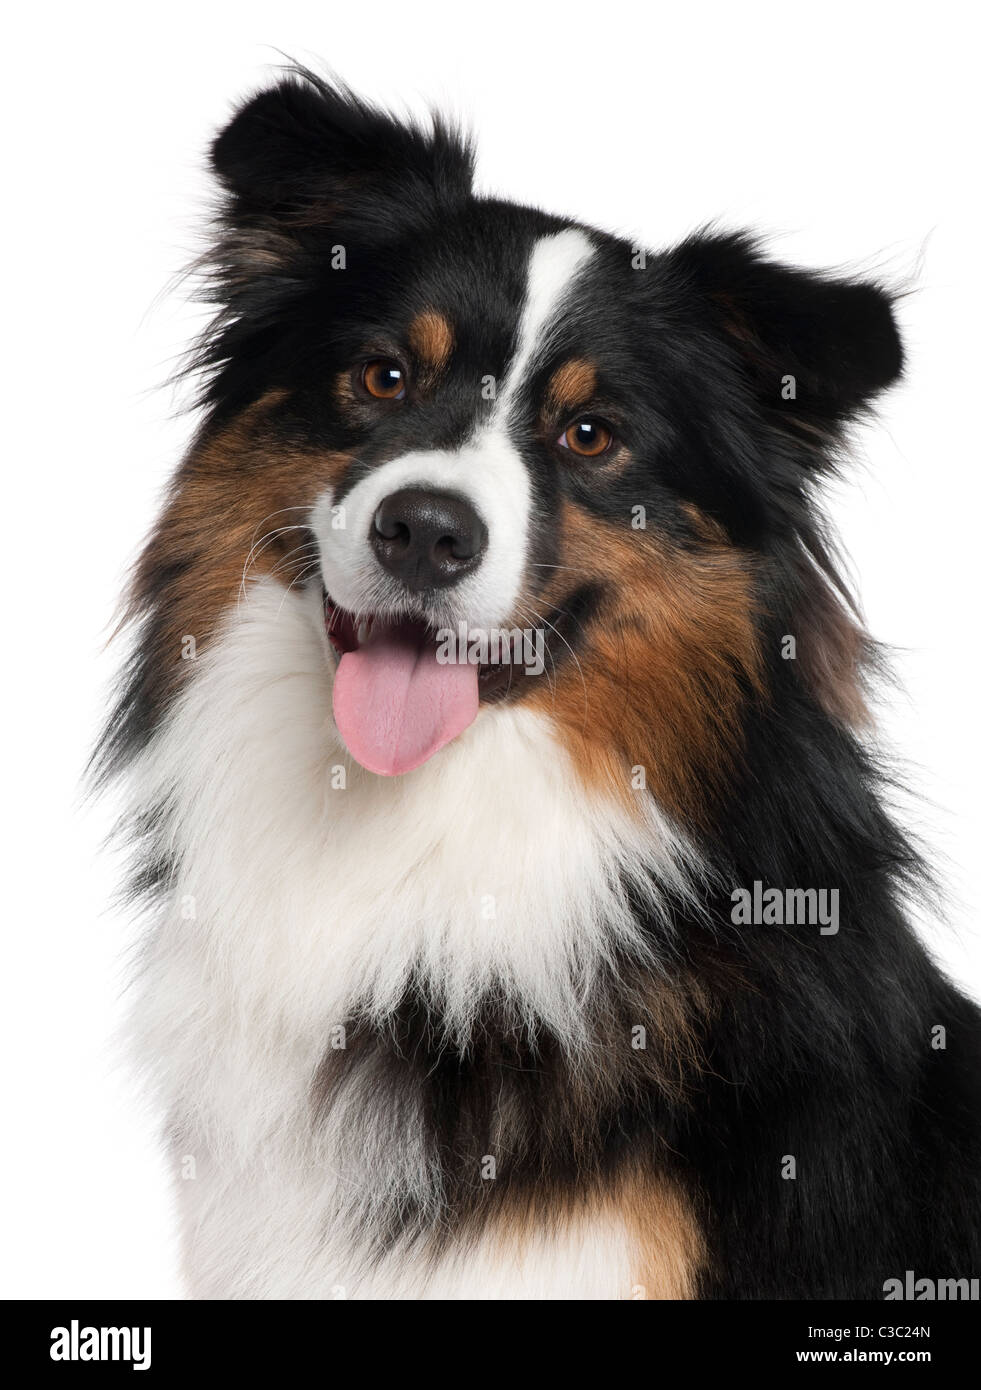 Close-up of Australian Shepherd dog, 2 years old, in front of white background - Stock Image